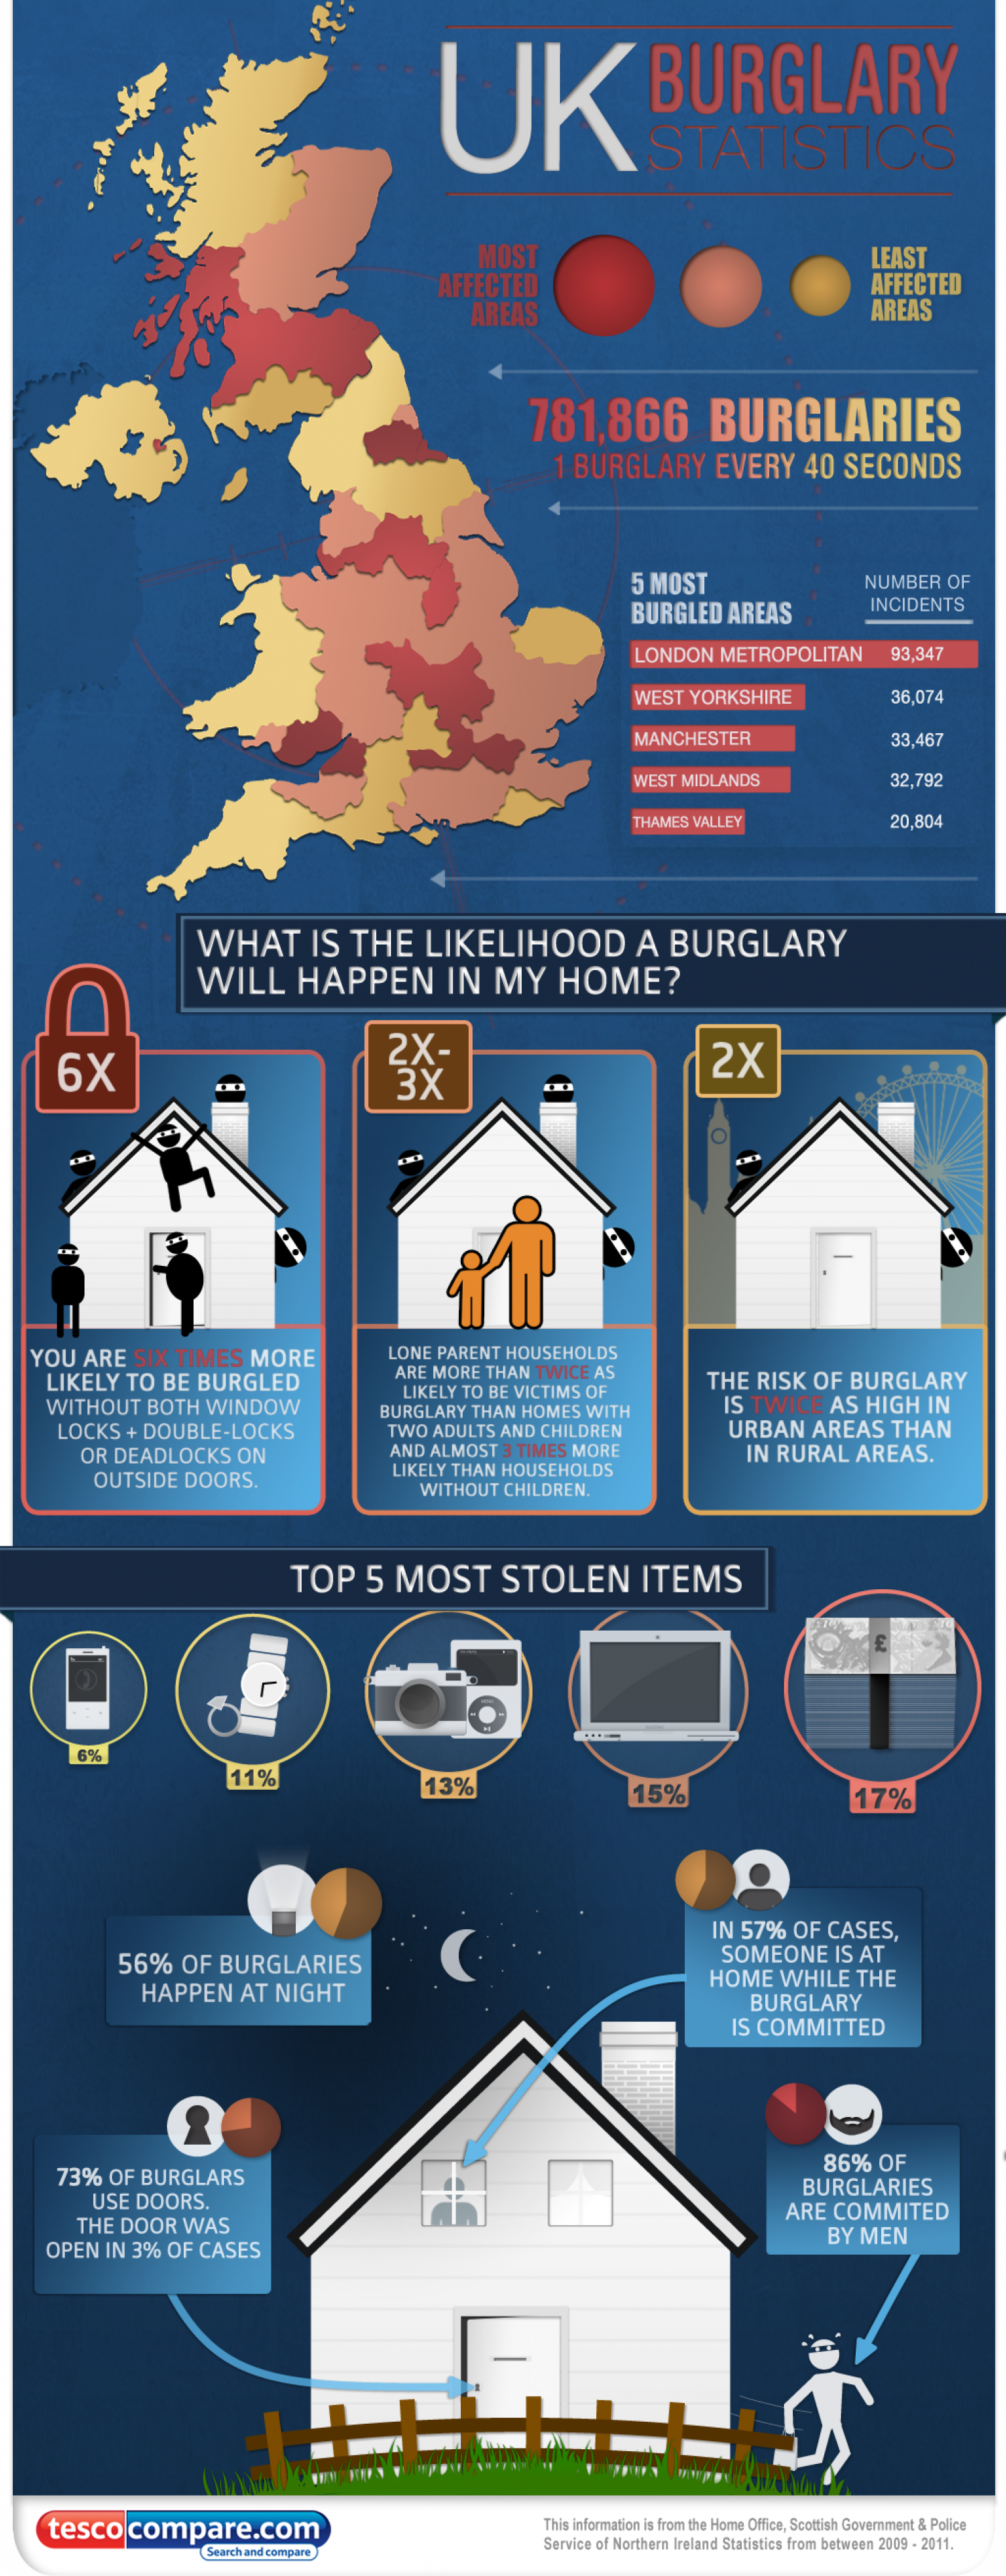 UK Burglary Statistics Infographic